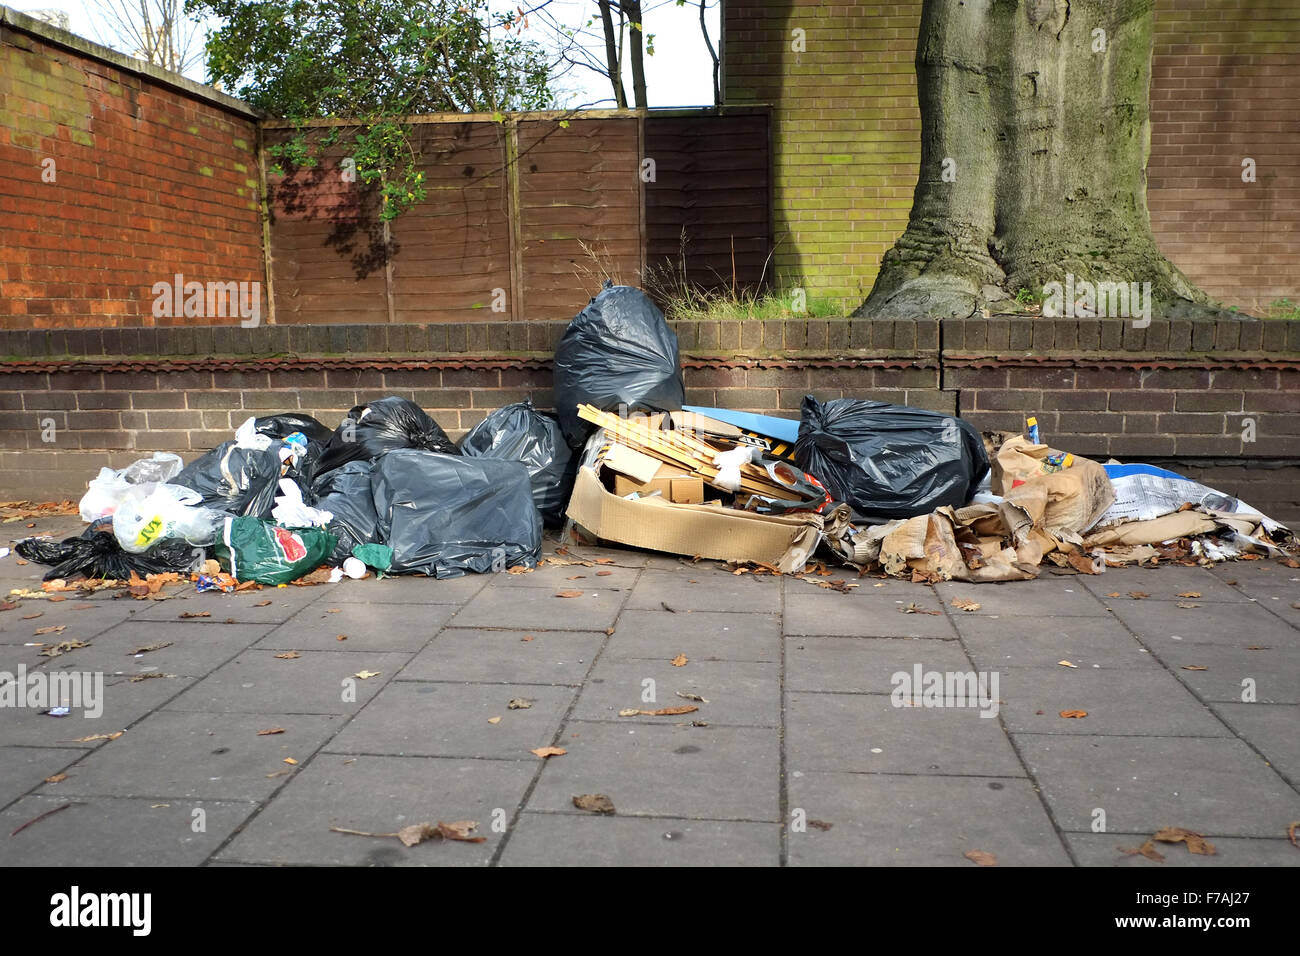 Refuse and rubbish left on a UK city center street. The rubbish, in bin bags and discarded boxes, is an eyesore - Stock Image